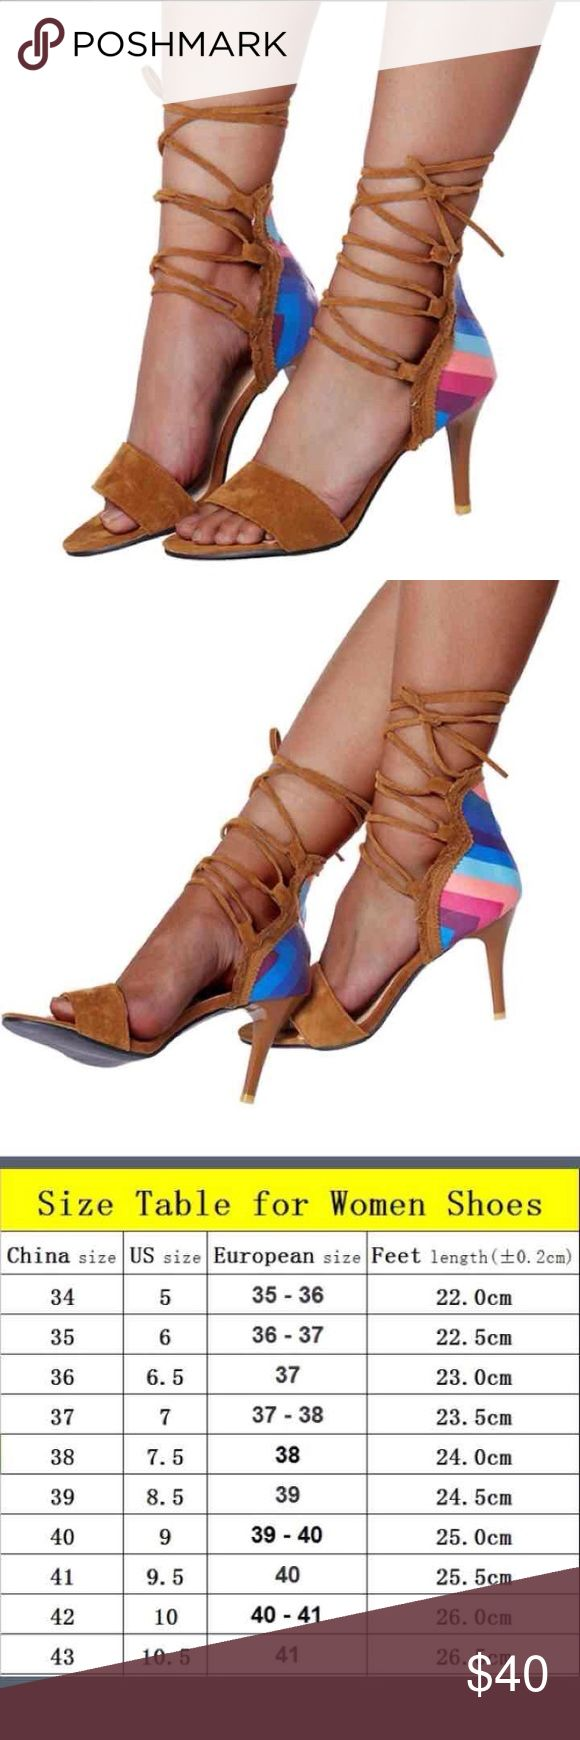 NWT Size 41 Euro (9.5) Rainbow Lace Up Heels New with tags. Suede straps. Lace up. Size 41 euro (9.5 Us) no flaws. Free gift Shoes Heels